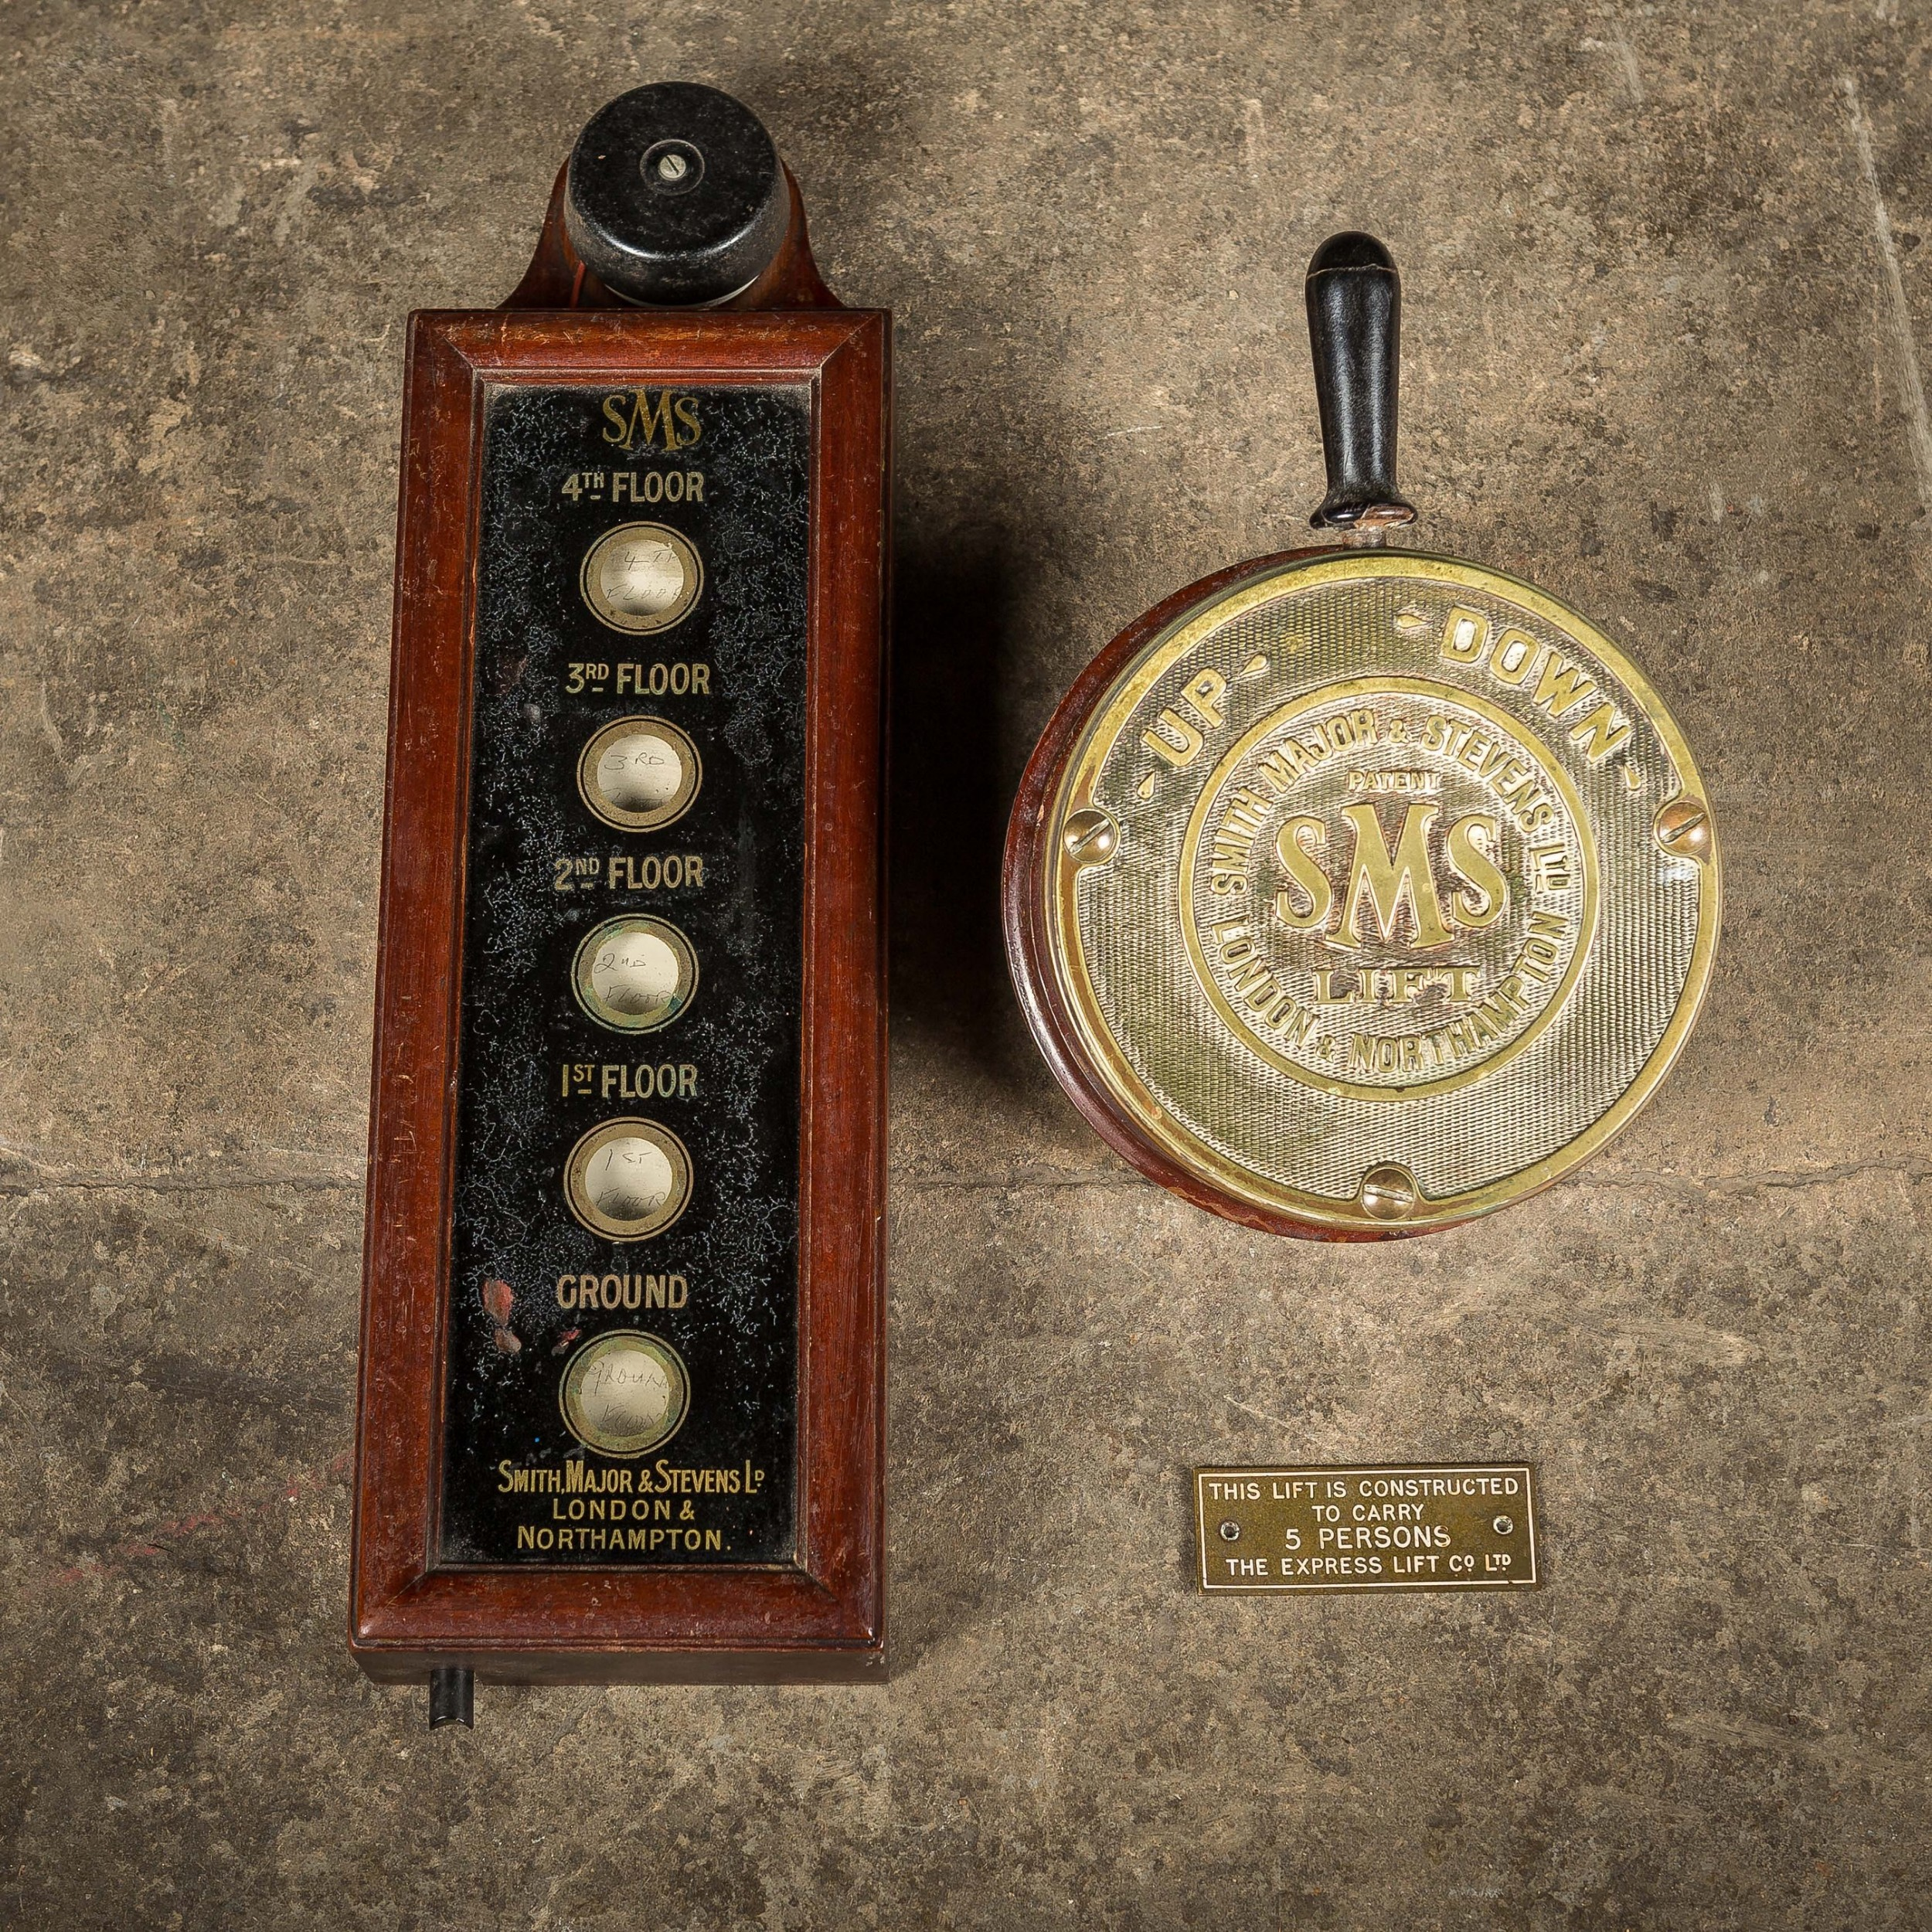 19th c brass elevator switch and floor indicator by smith major stevens ltd